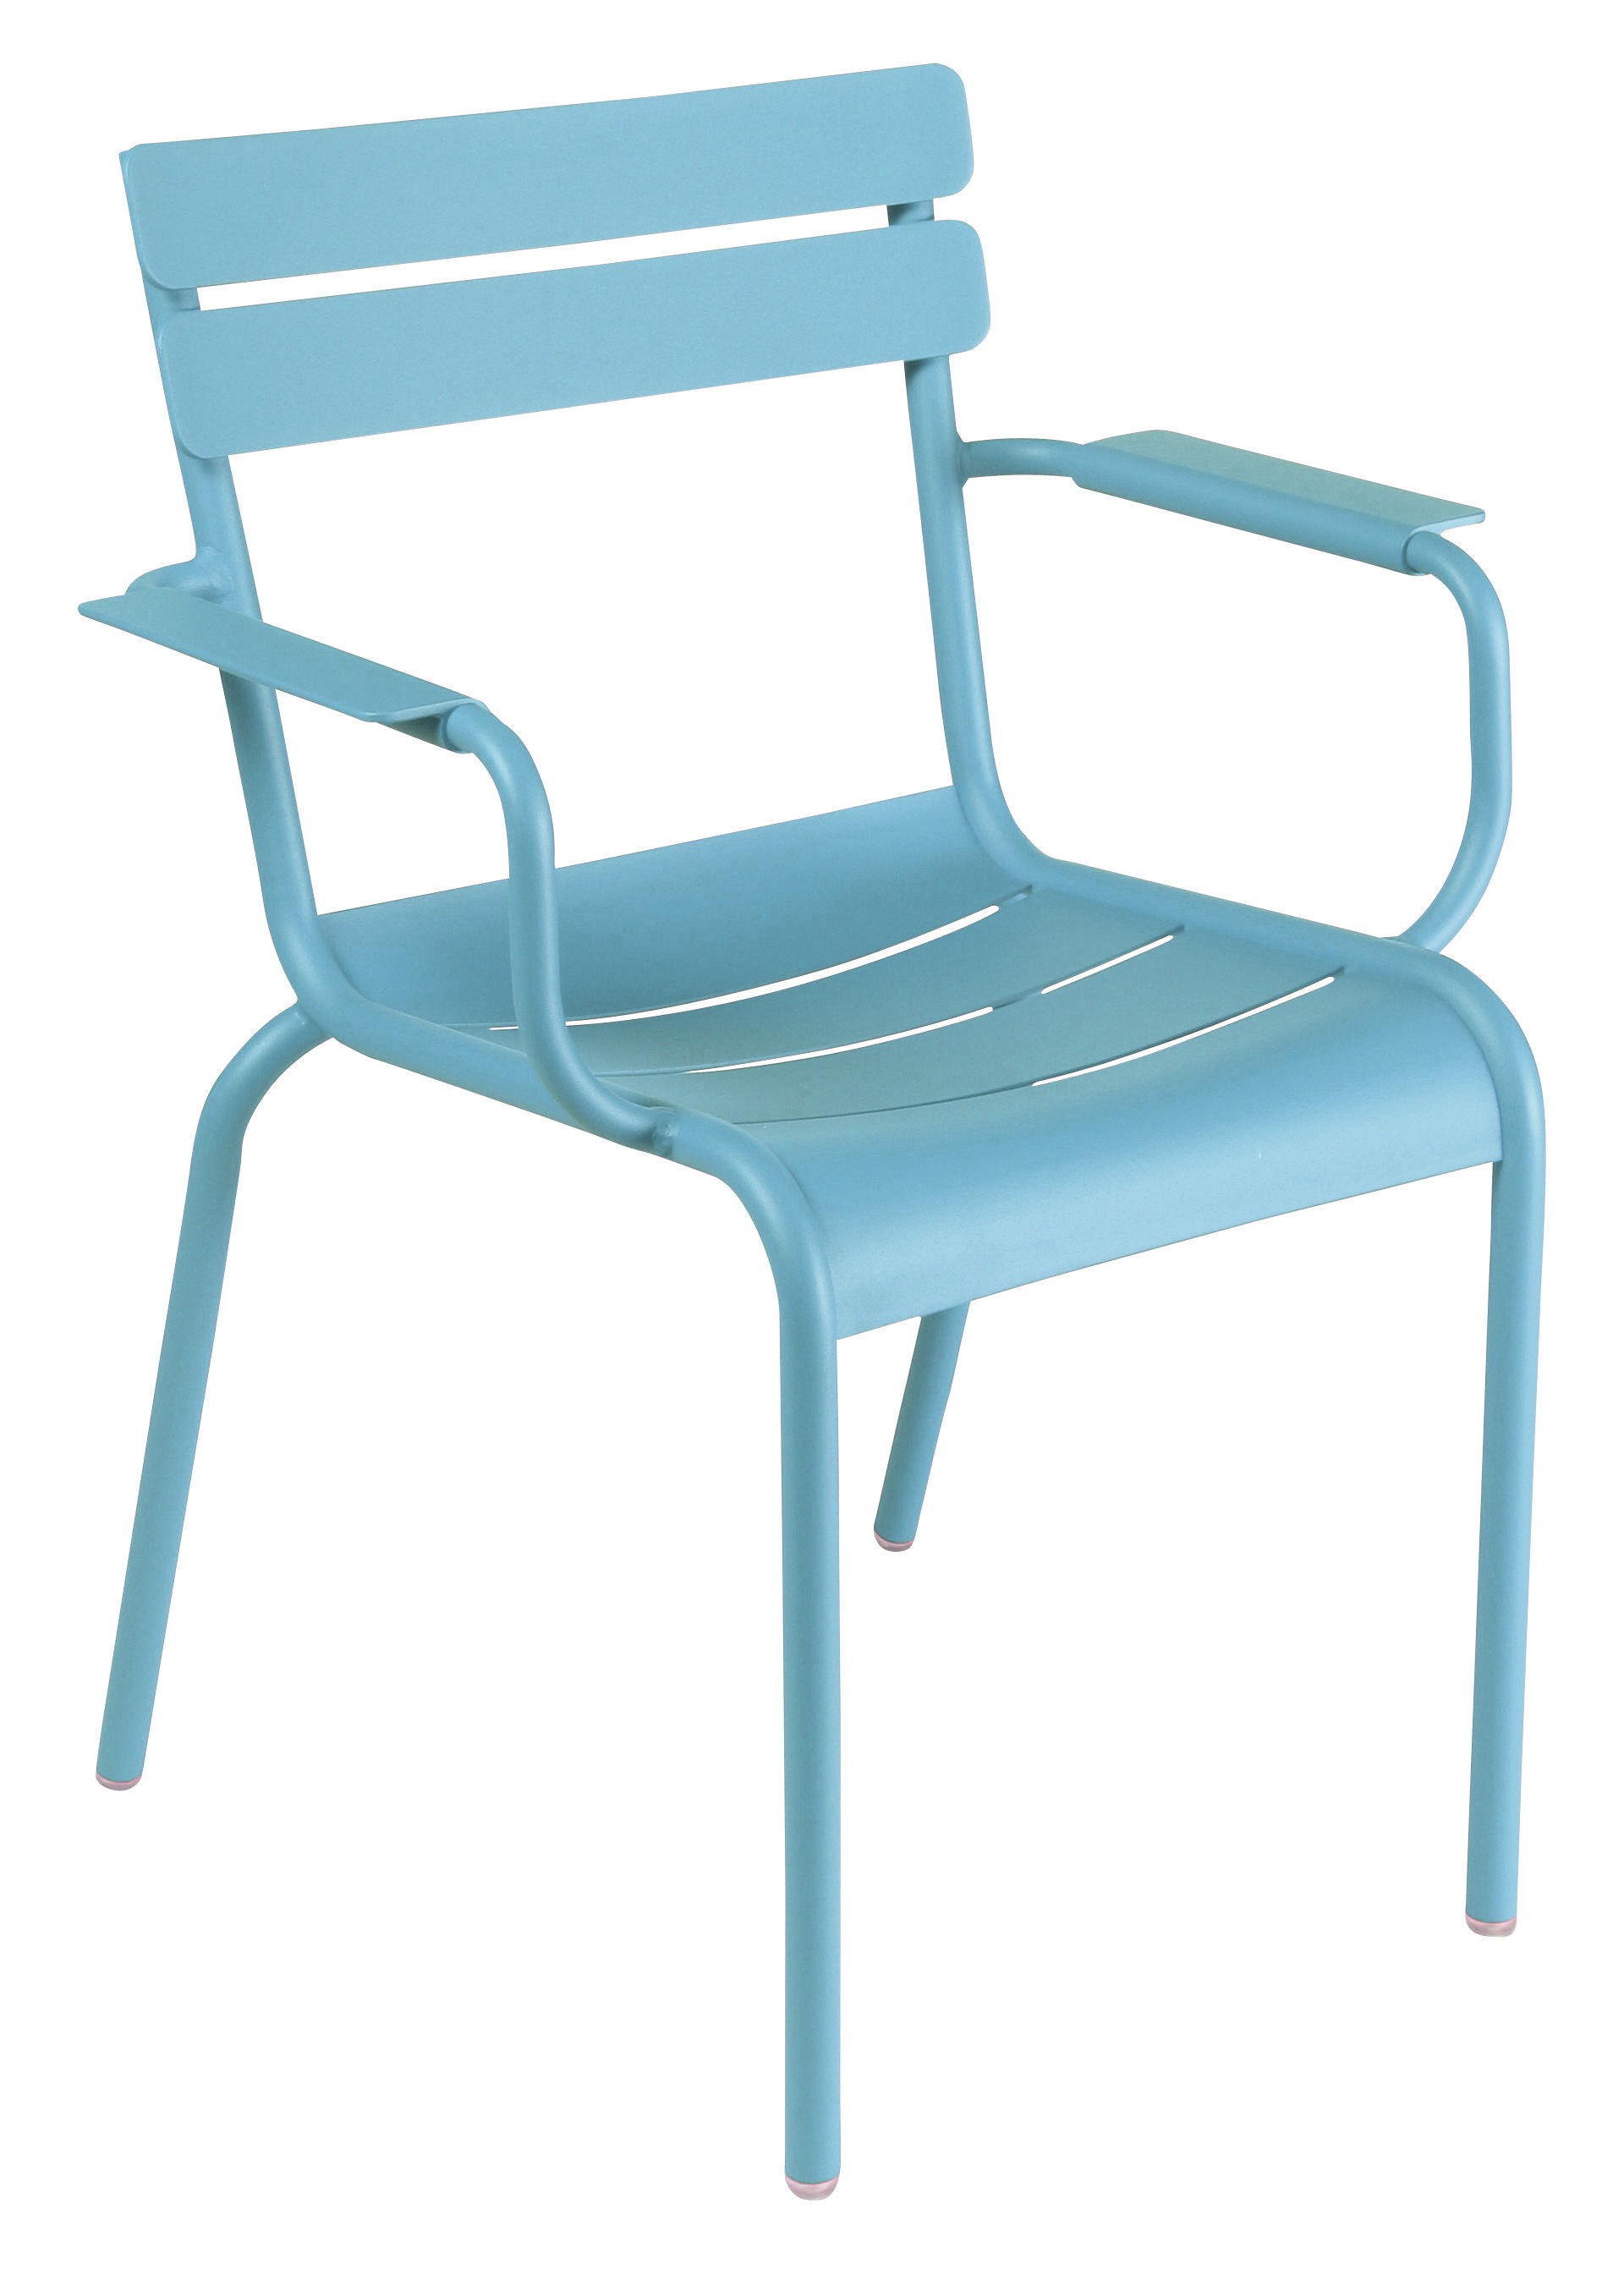 Life Style - Luxembourg Stackable armchair by Fermob - Turquoise - Lacquered aluminium